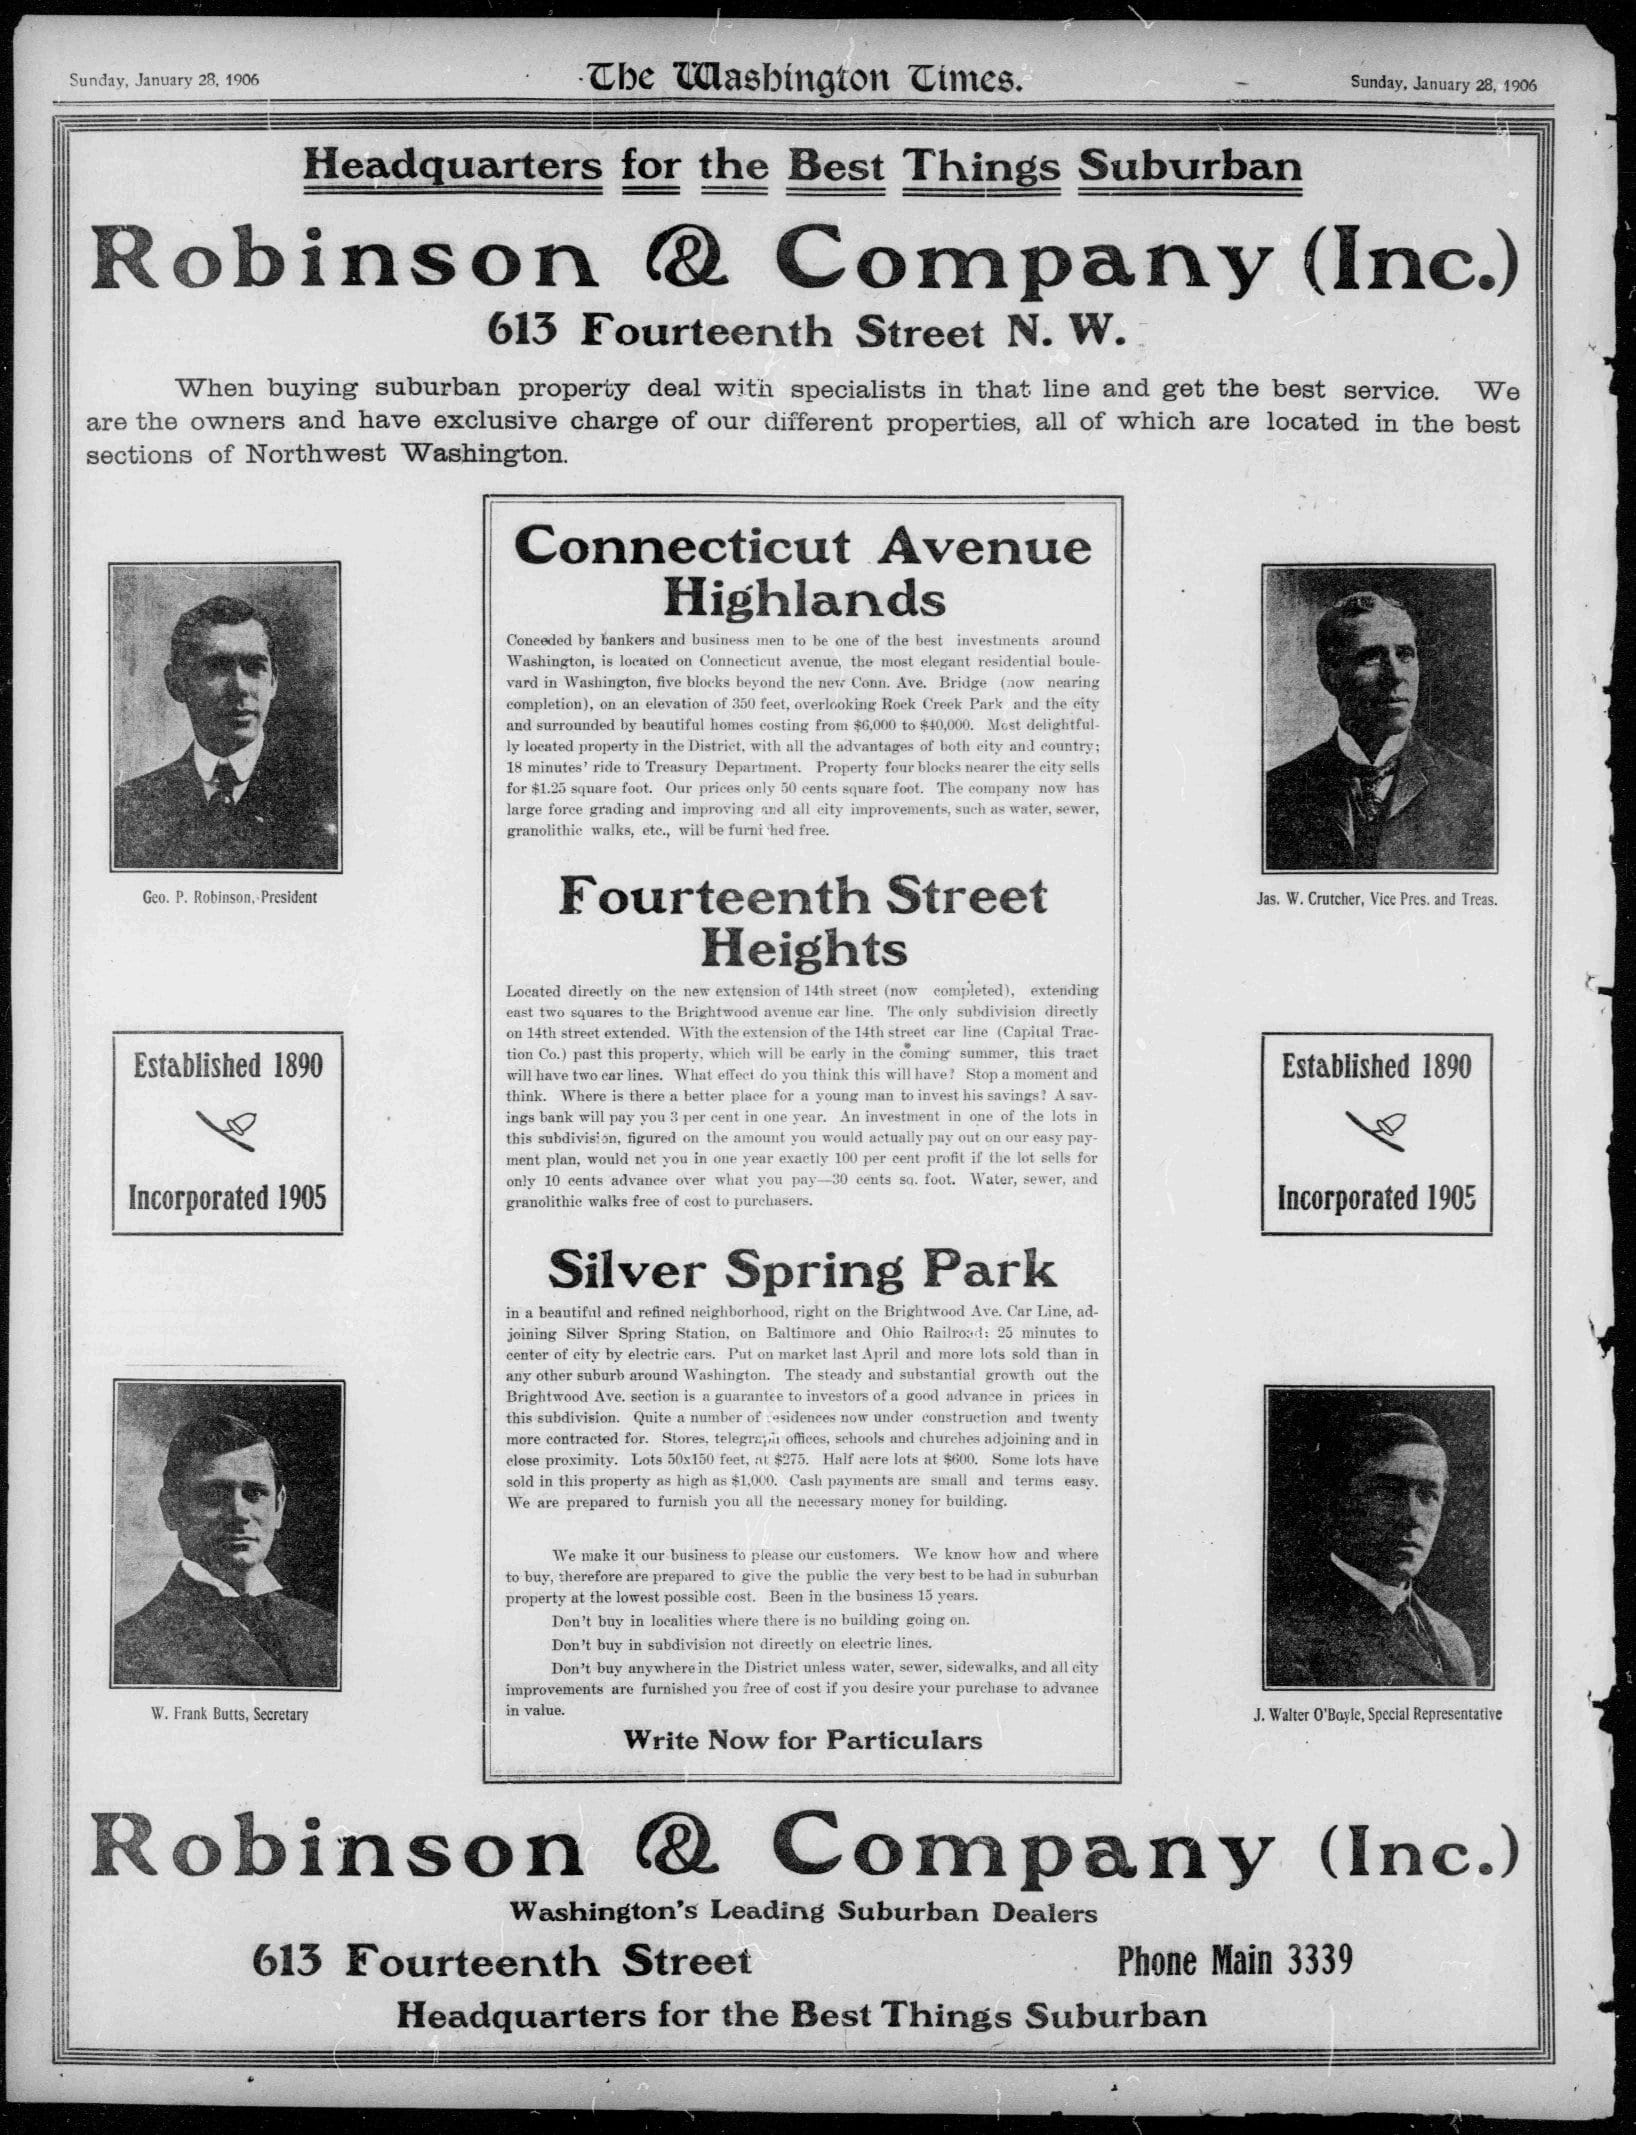 Robinson & Company real estate advertisement in the Washington Times - January 28th, 1906